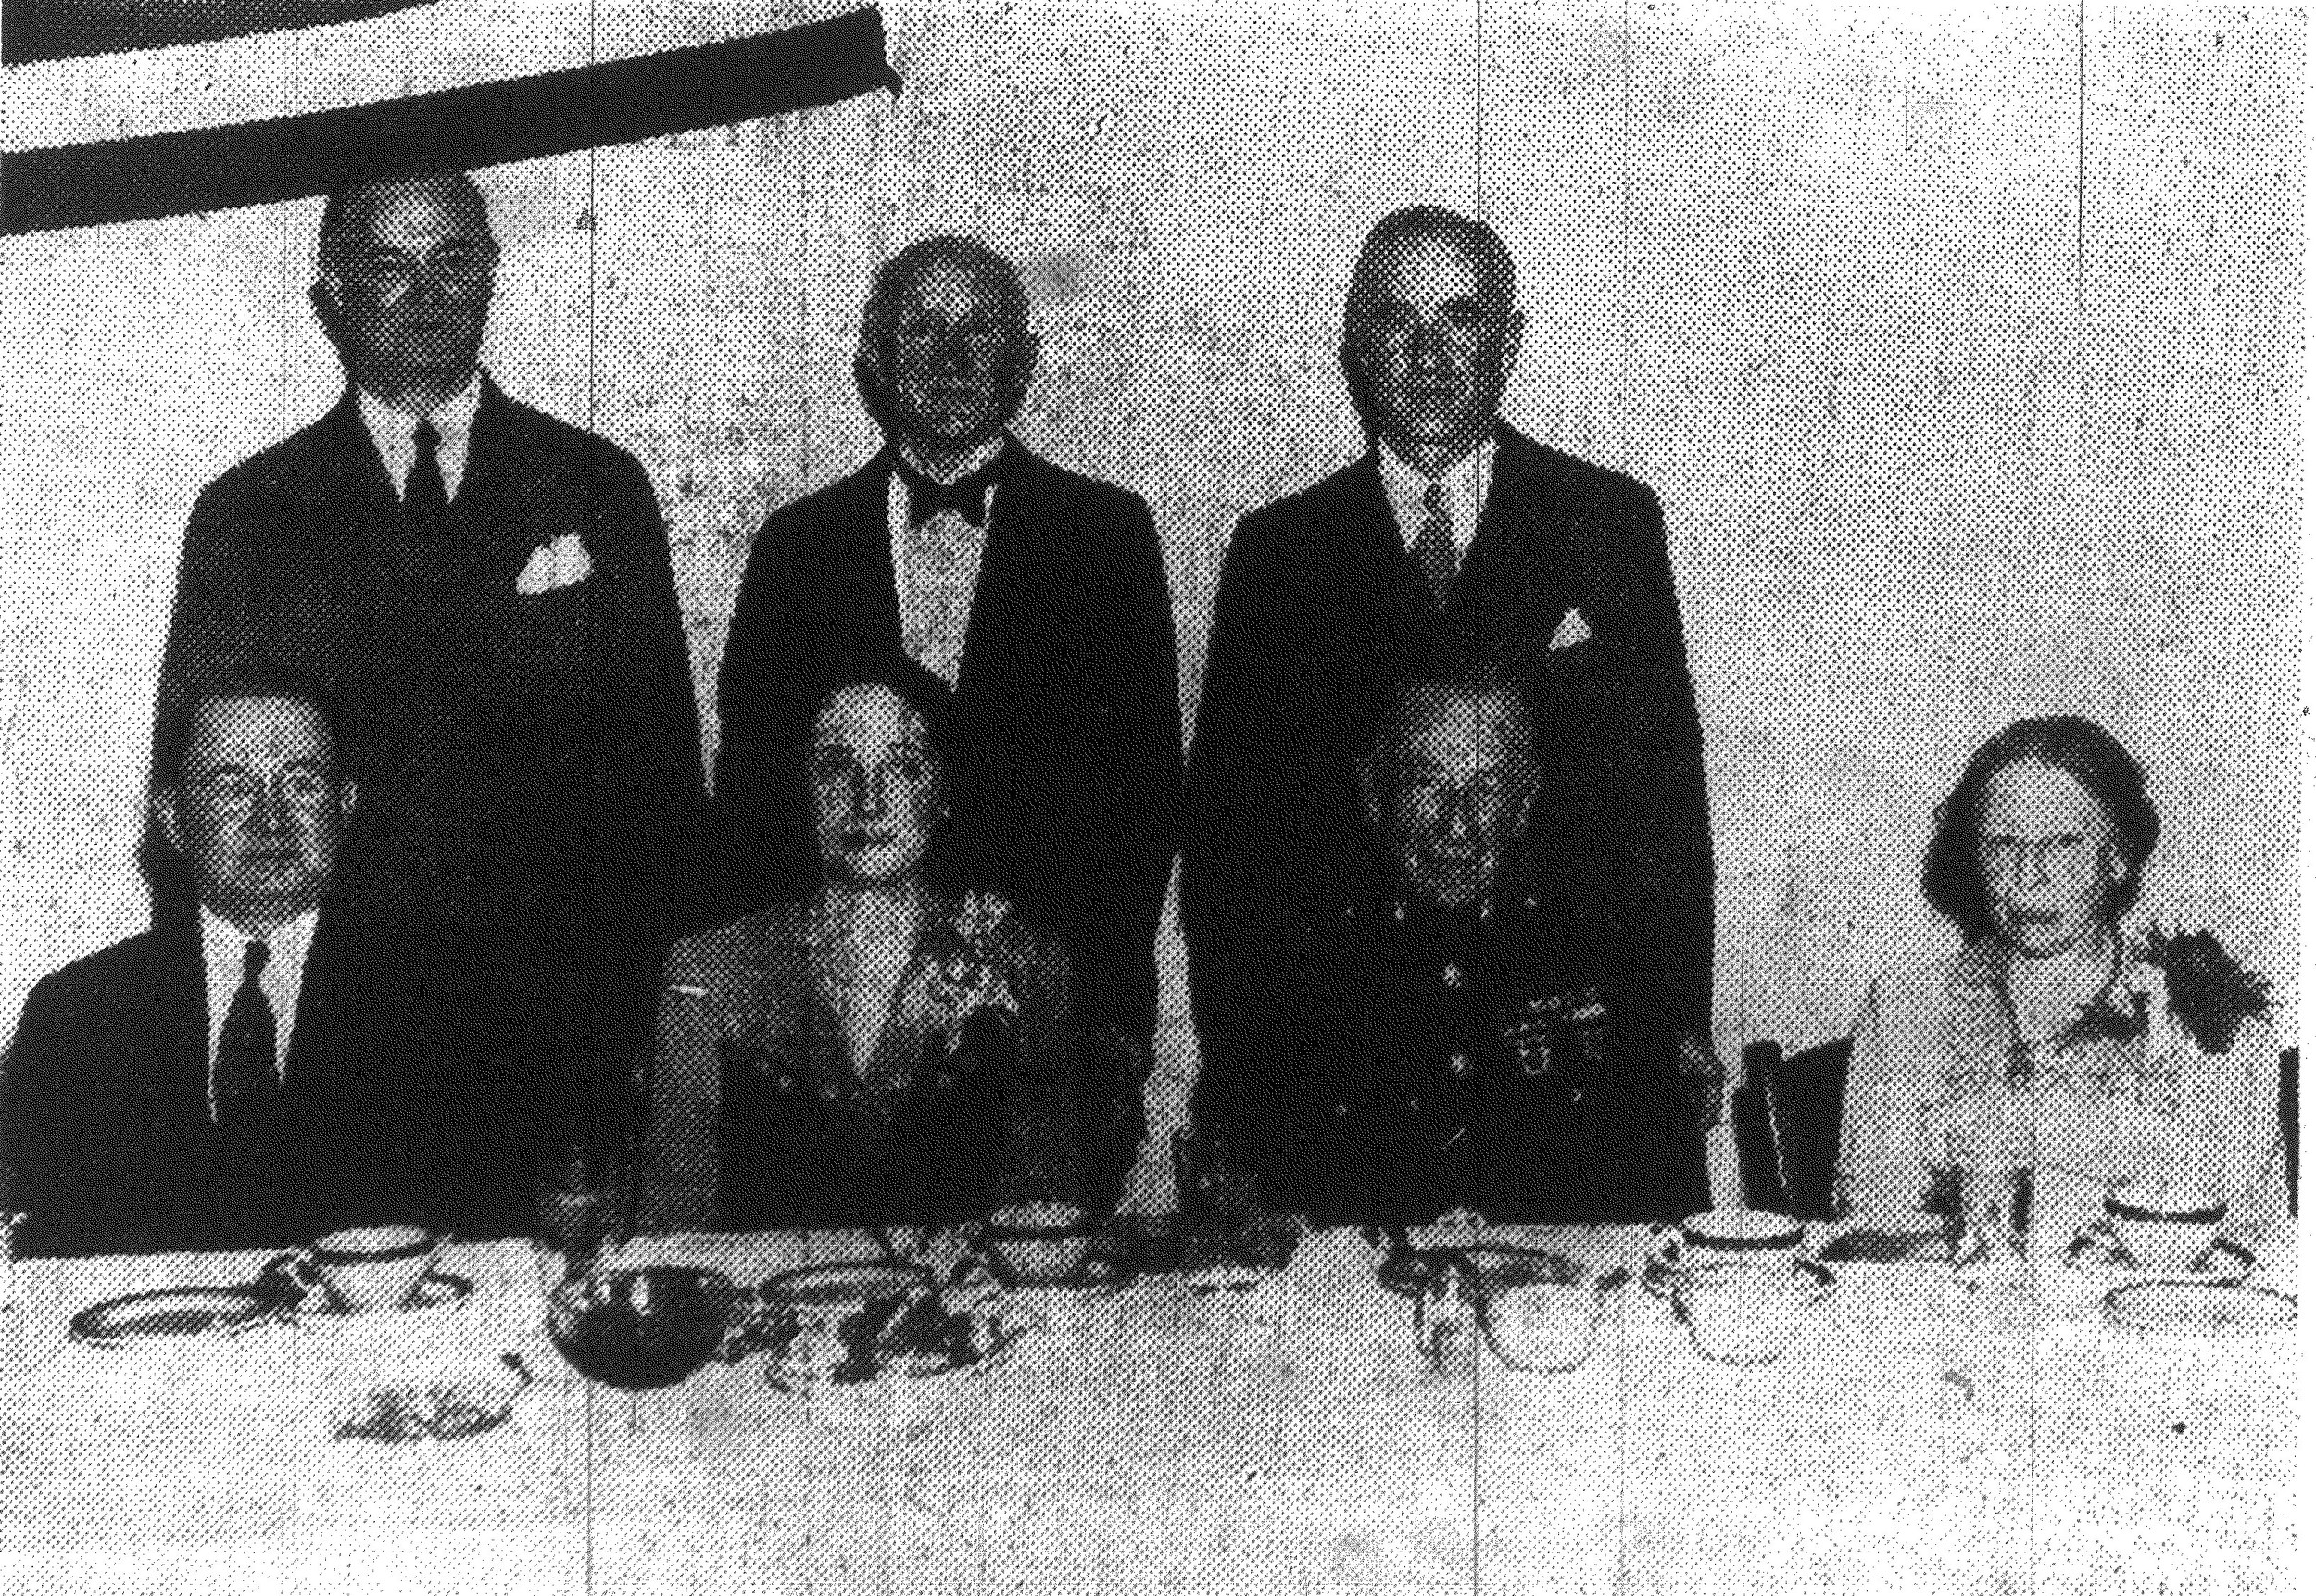 At the dinner honoring Maj. Gen. Emile P. Moses, Sumter native and commander of the Parris Island Marine Base are, seated from left, Mayor F.B. Creech, Mrs. Emile P. Moses, Gen. Moses and Miss Kate Moses, sister of the general. Back row: Edwin B. Boyle, toastmaster; Herbert A. Moses and Henry P. Moses, brothers of the honor guest.